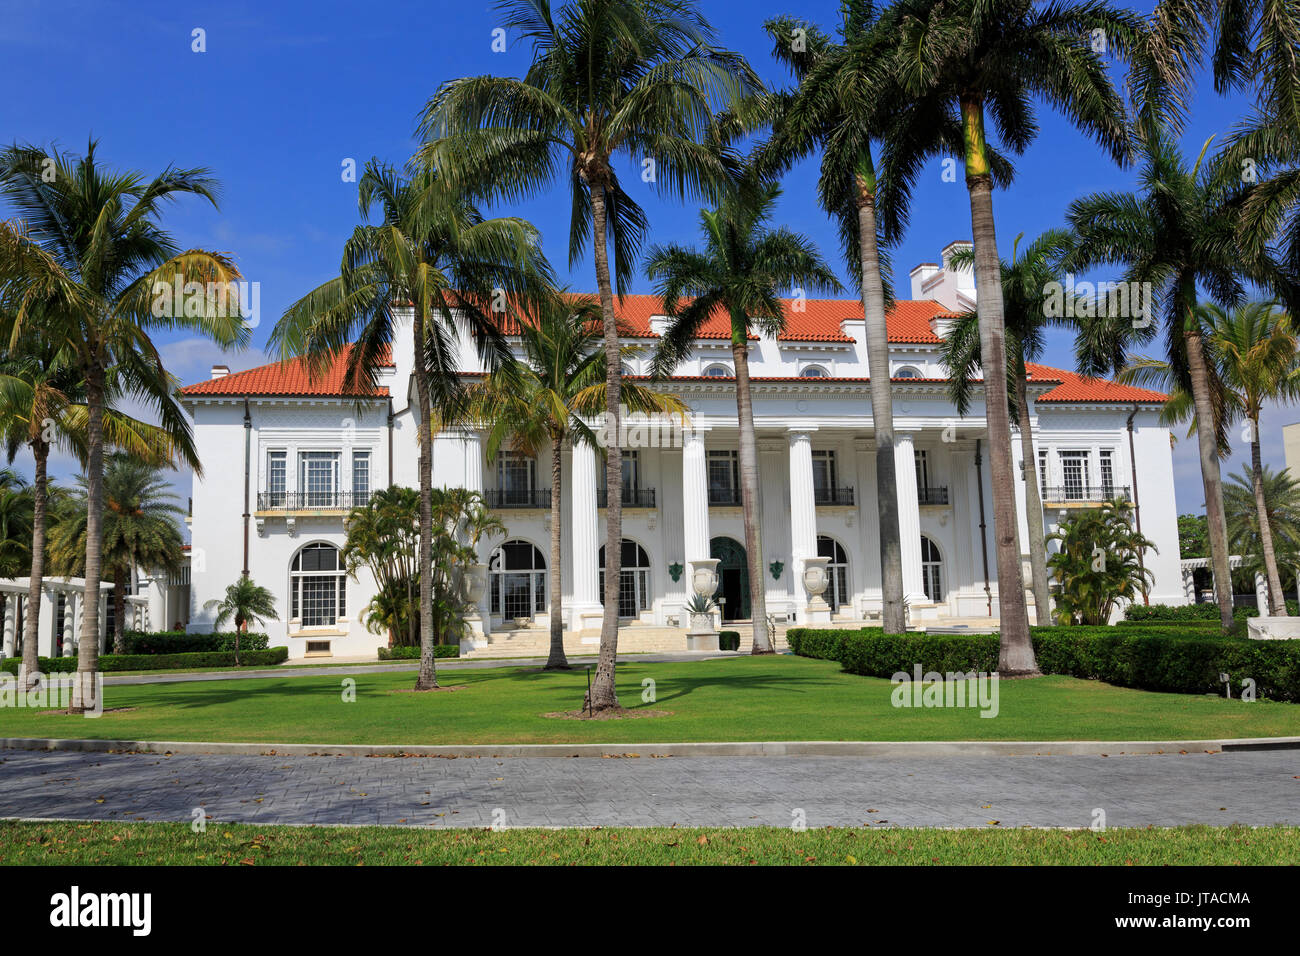 Flagler Museum, Palm Beach, Florida, United States of America, North America - Stock Image